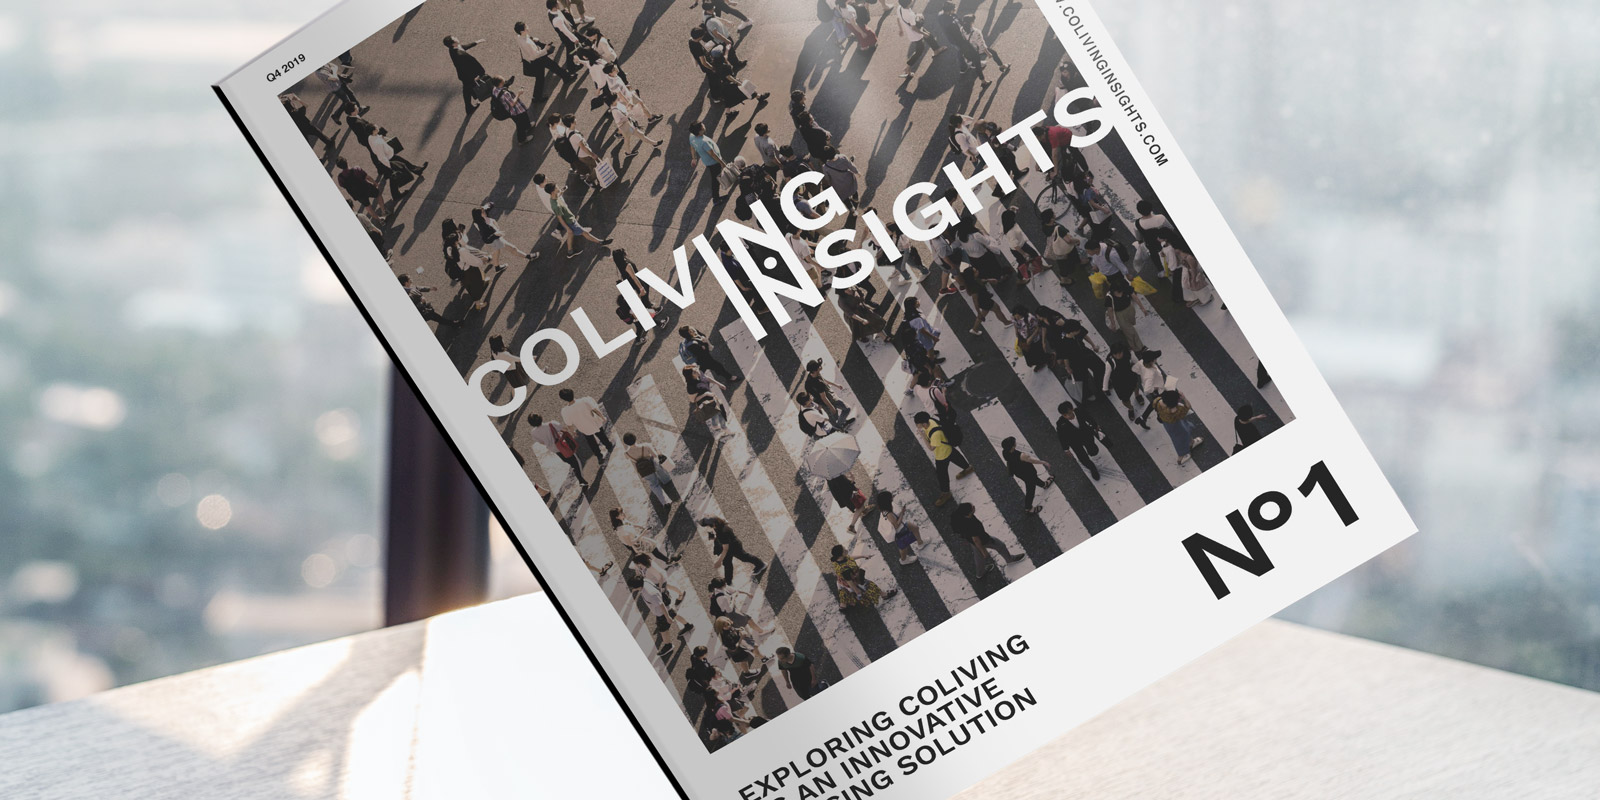 SPX Agency: Coliving Insights magazine no1 cover mockup